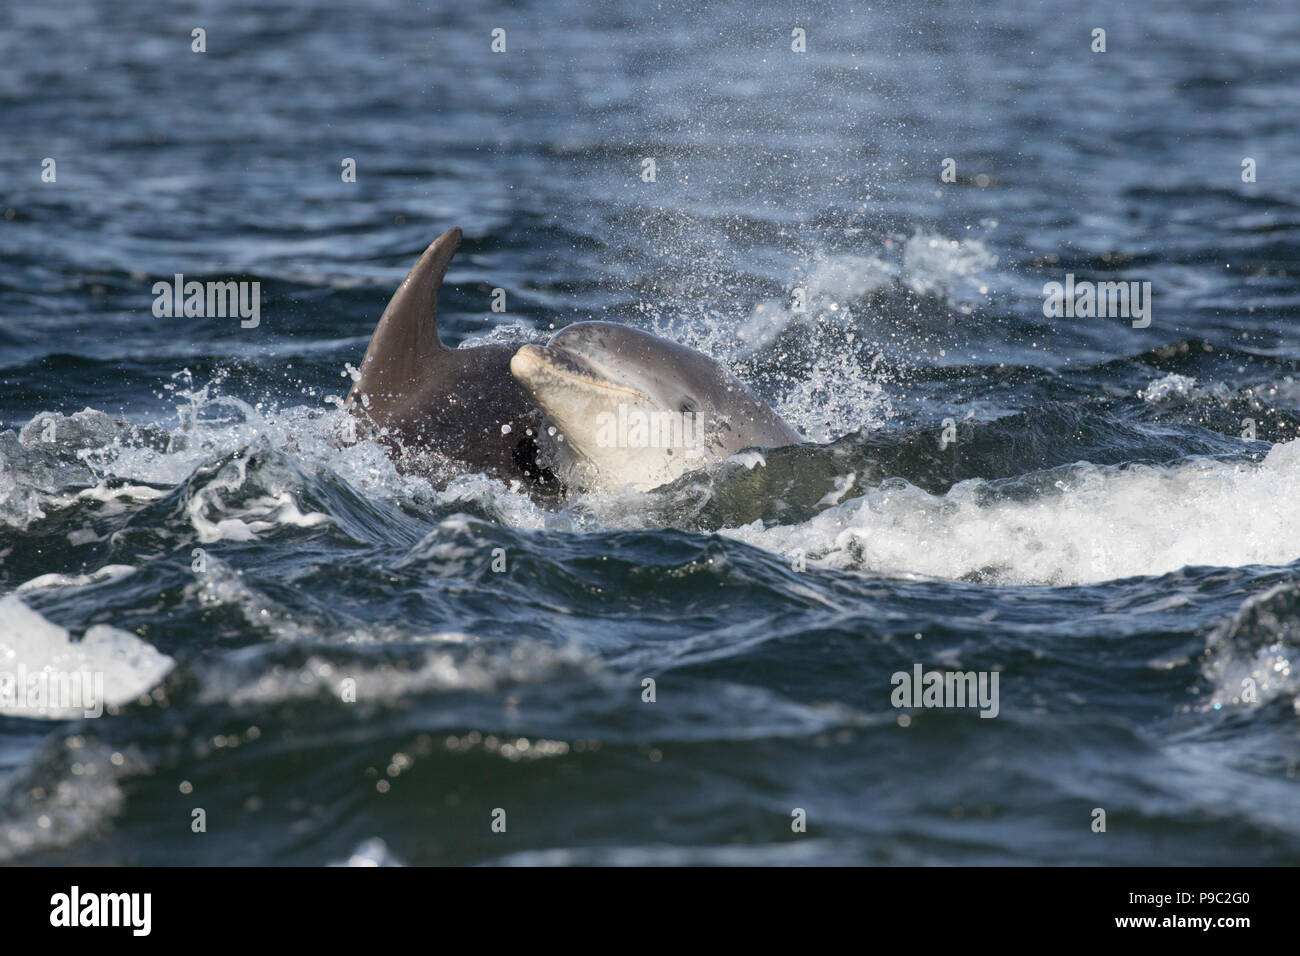 Bottlenose dolphins (Tursiops truncatus) in the Moray Firth, Chanonry Point, Black Isle, Scotland, UK, Europe - Stock Image